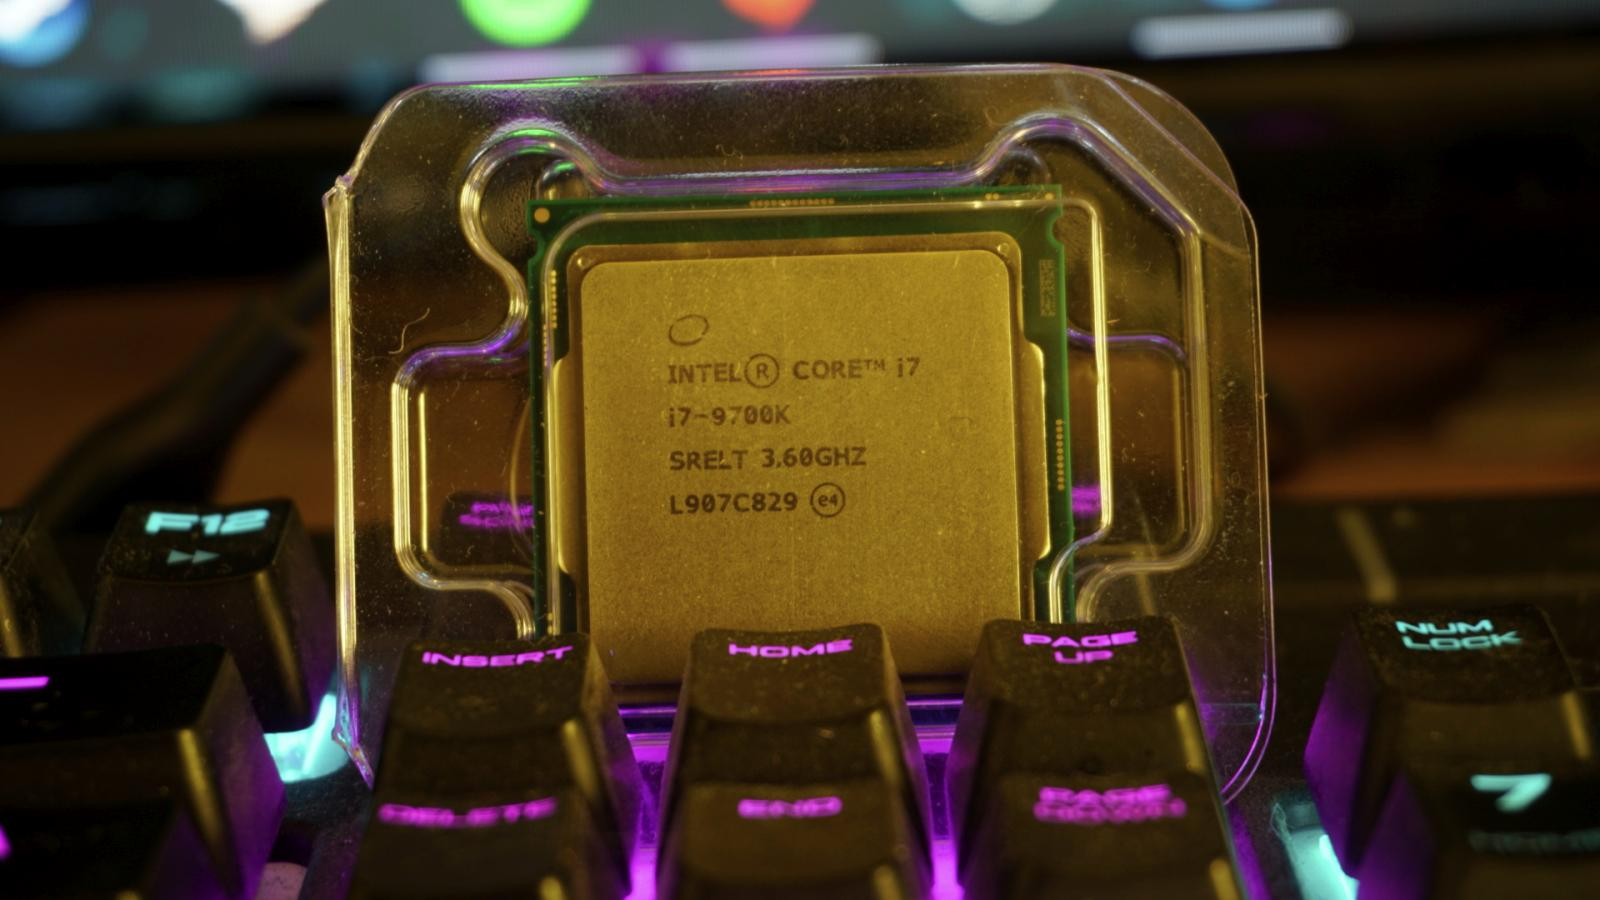 Photo of Intel i7-9700k